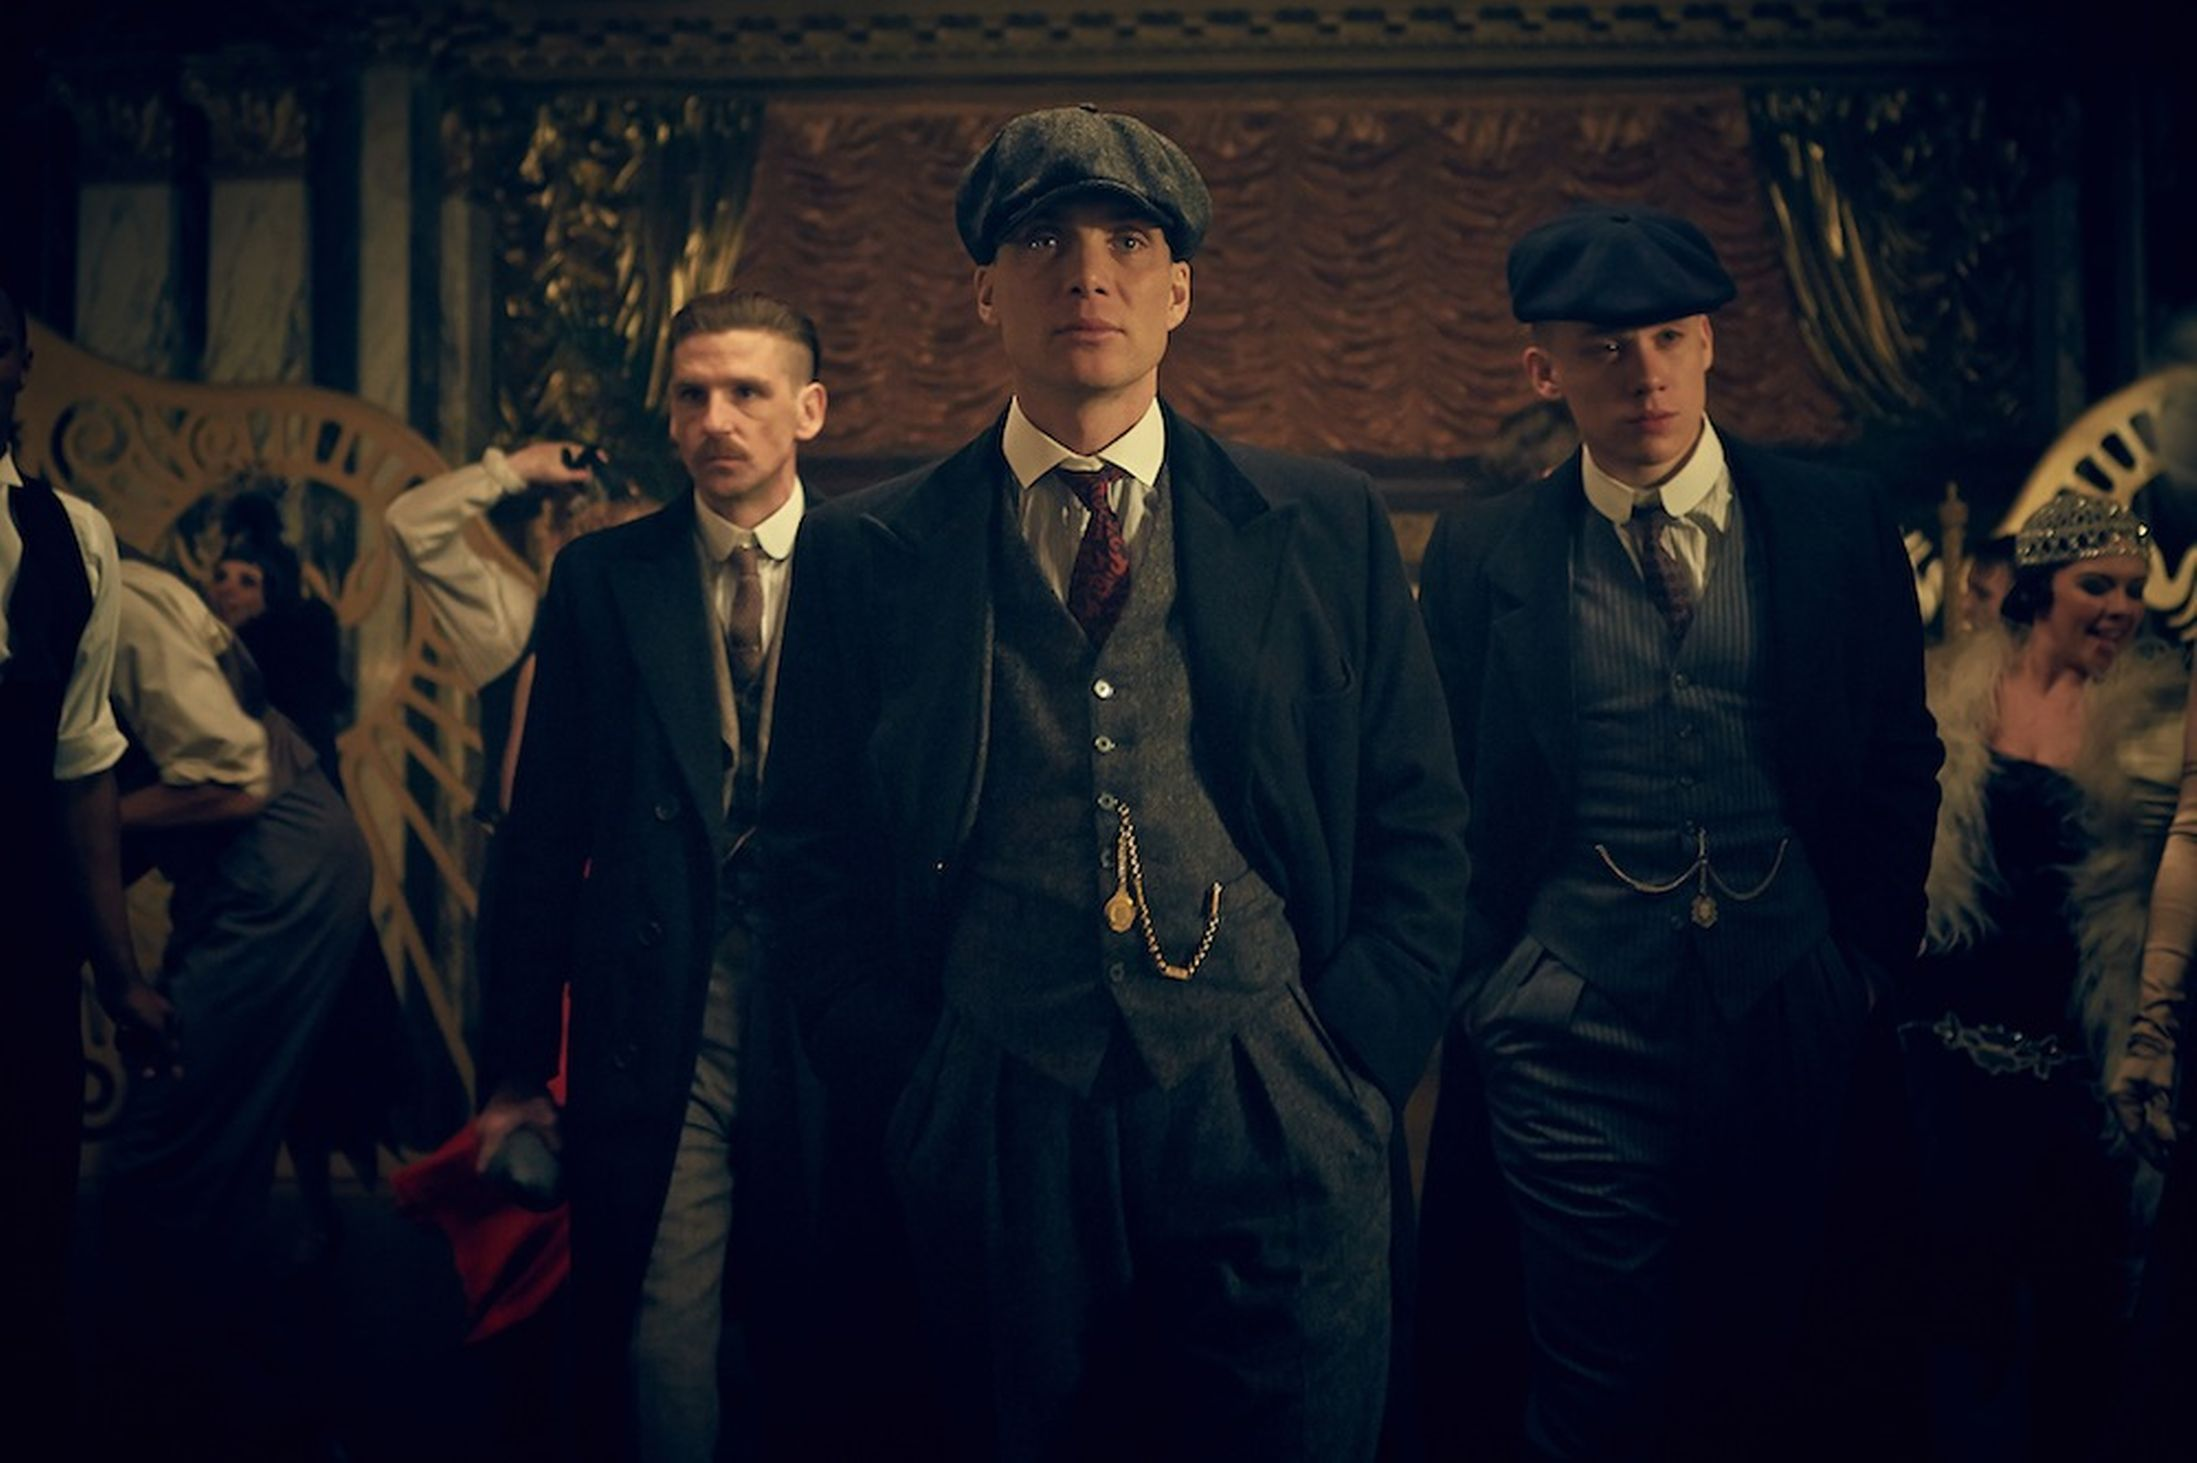 peaky blinders' 10 best soundtrack songs